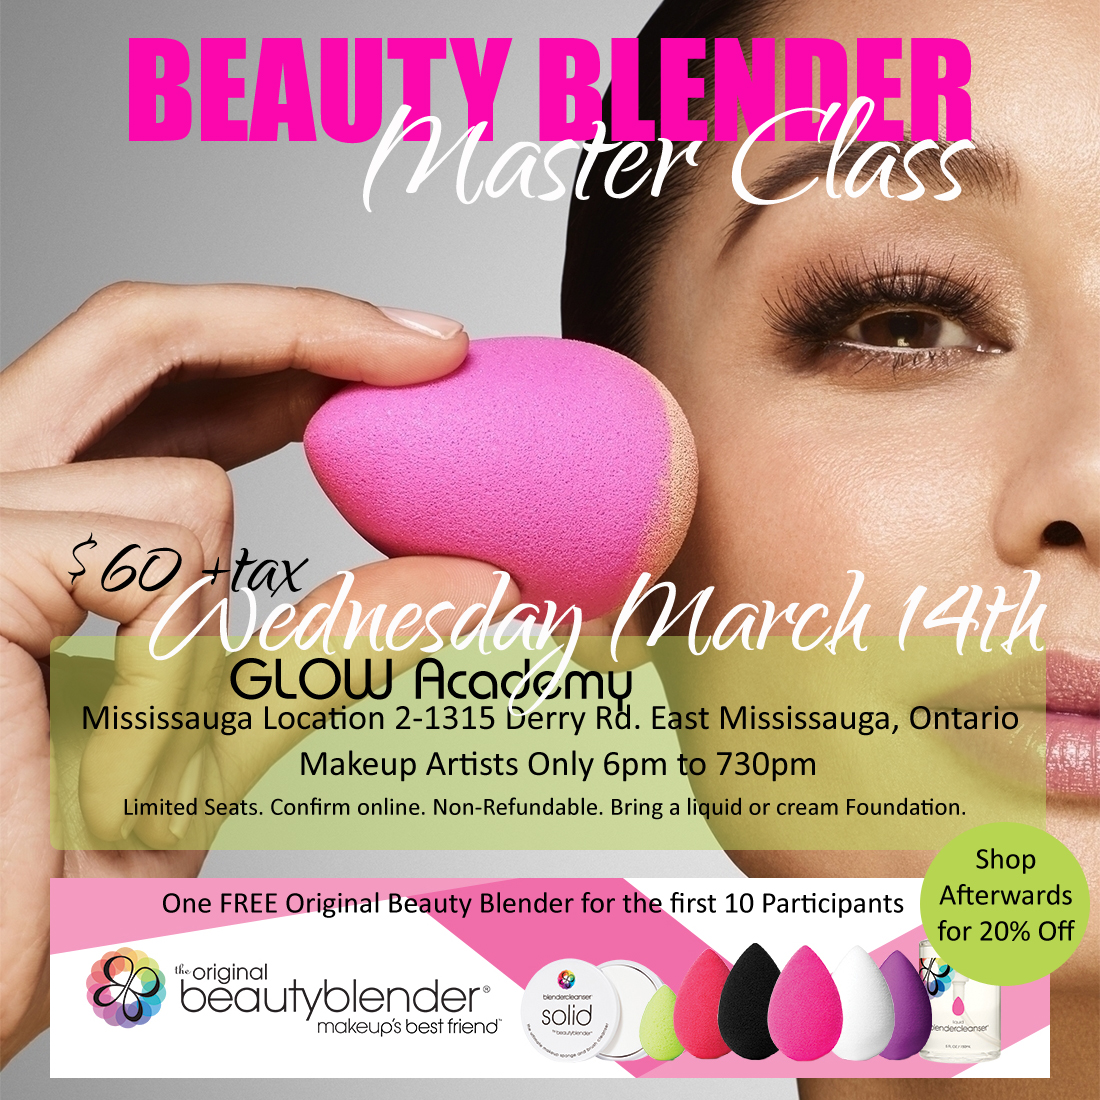 BEAUTY BLENDER MASTER CLASS